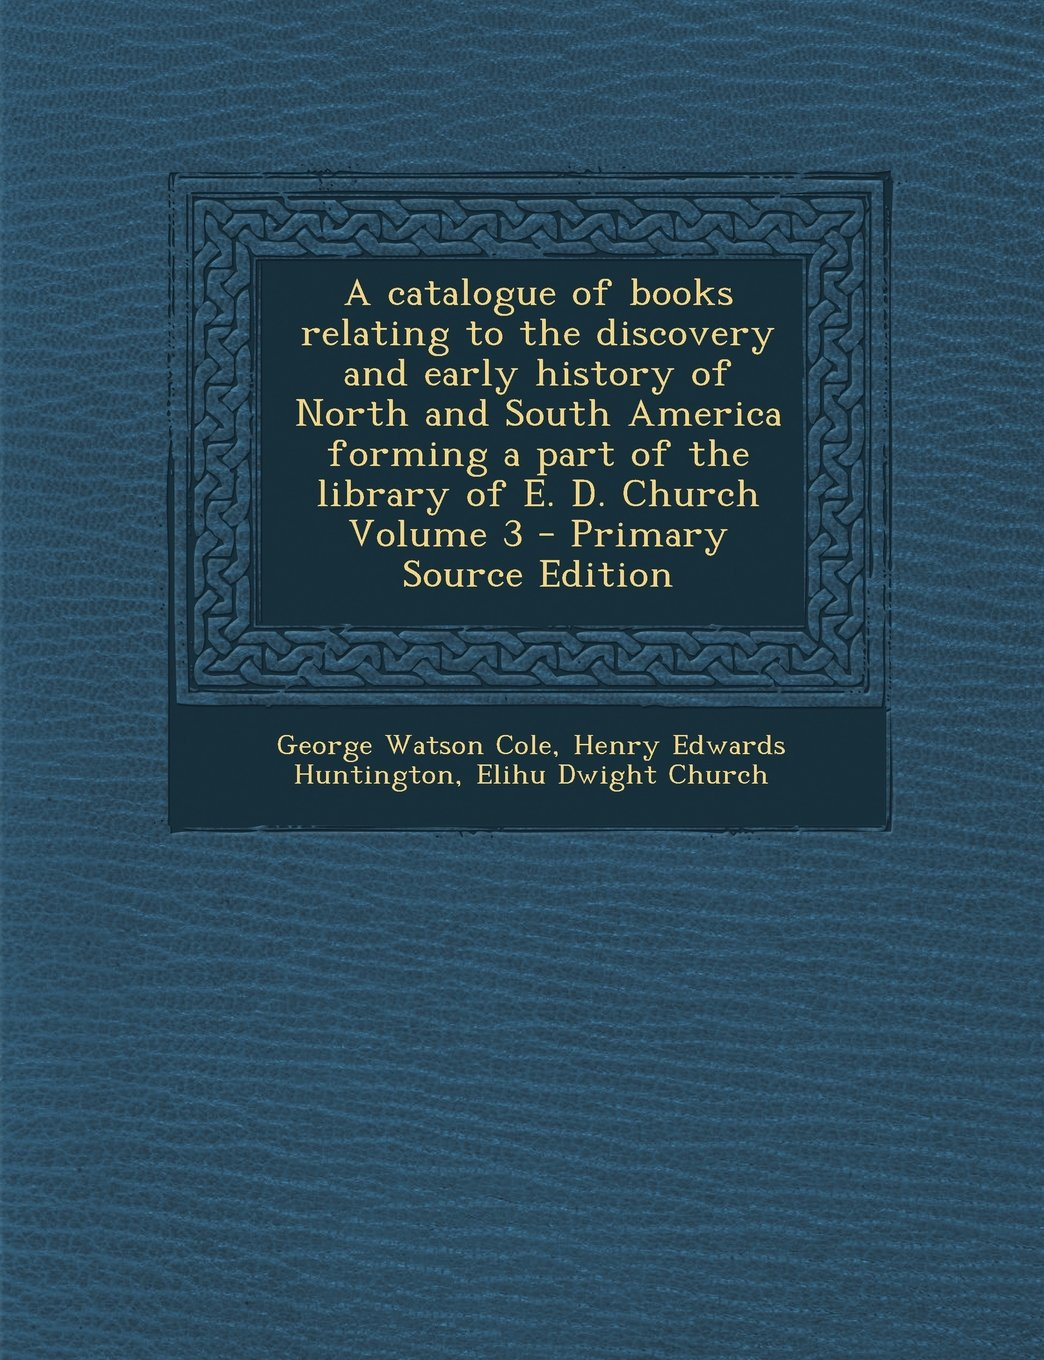 A   Catalogue of Books Relating to the Discovery and Early History of North and South America Forming a Part of the Library of E. D. Church Volume 3 - pdf epub